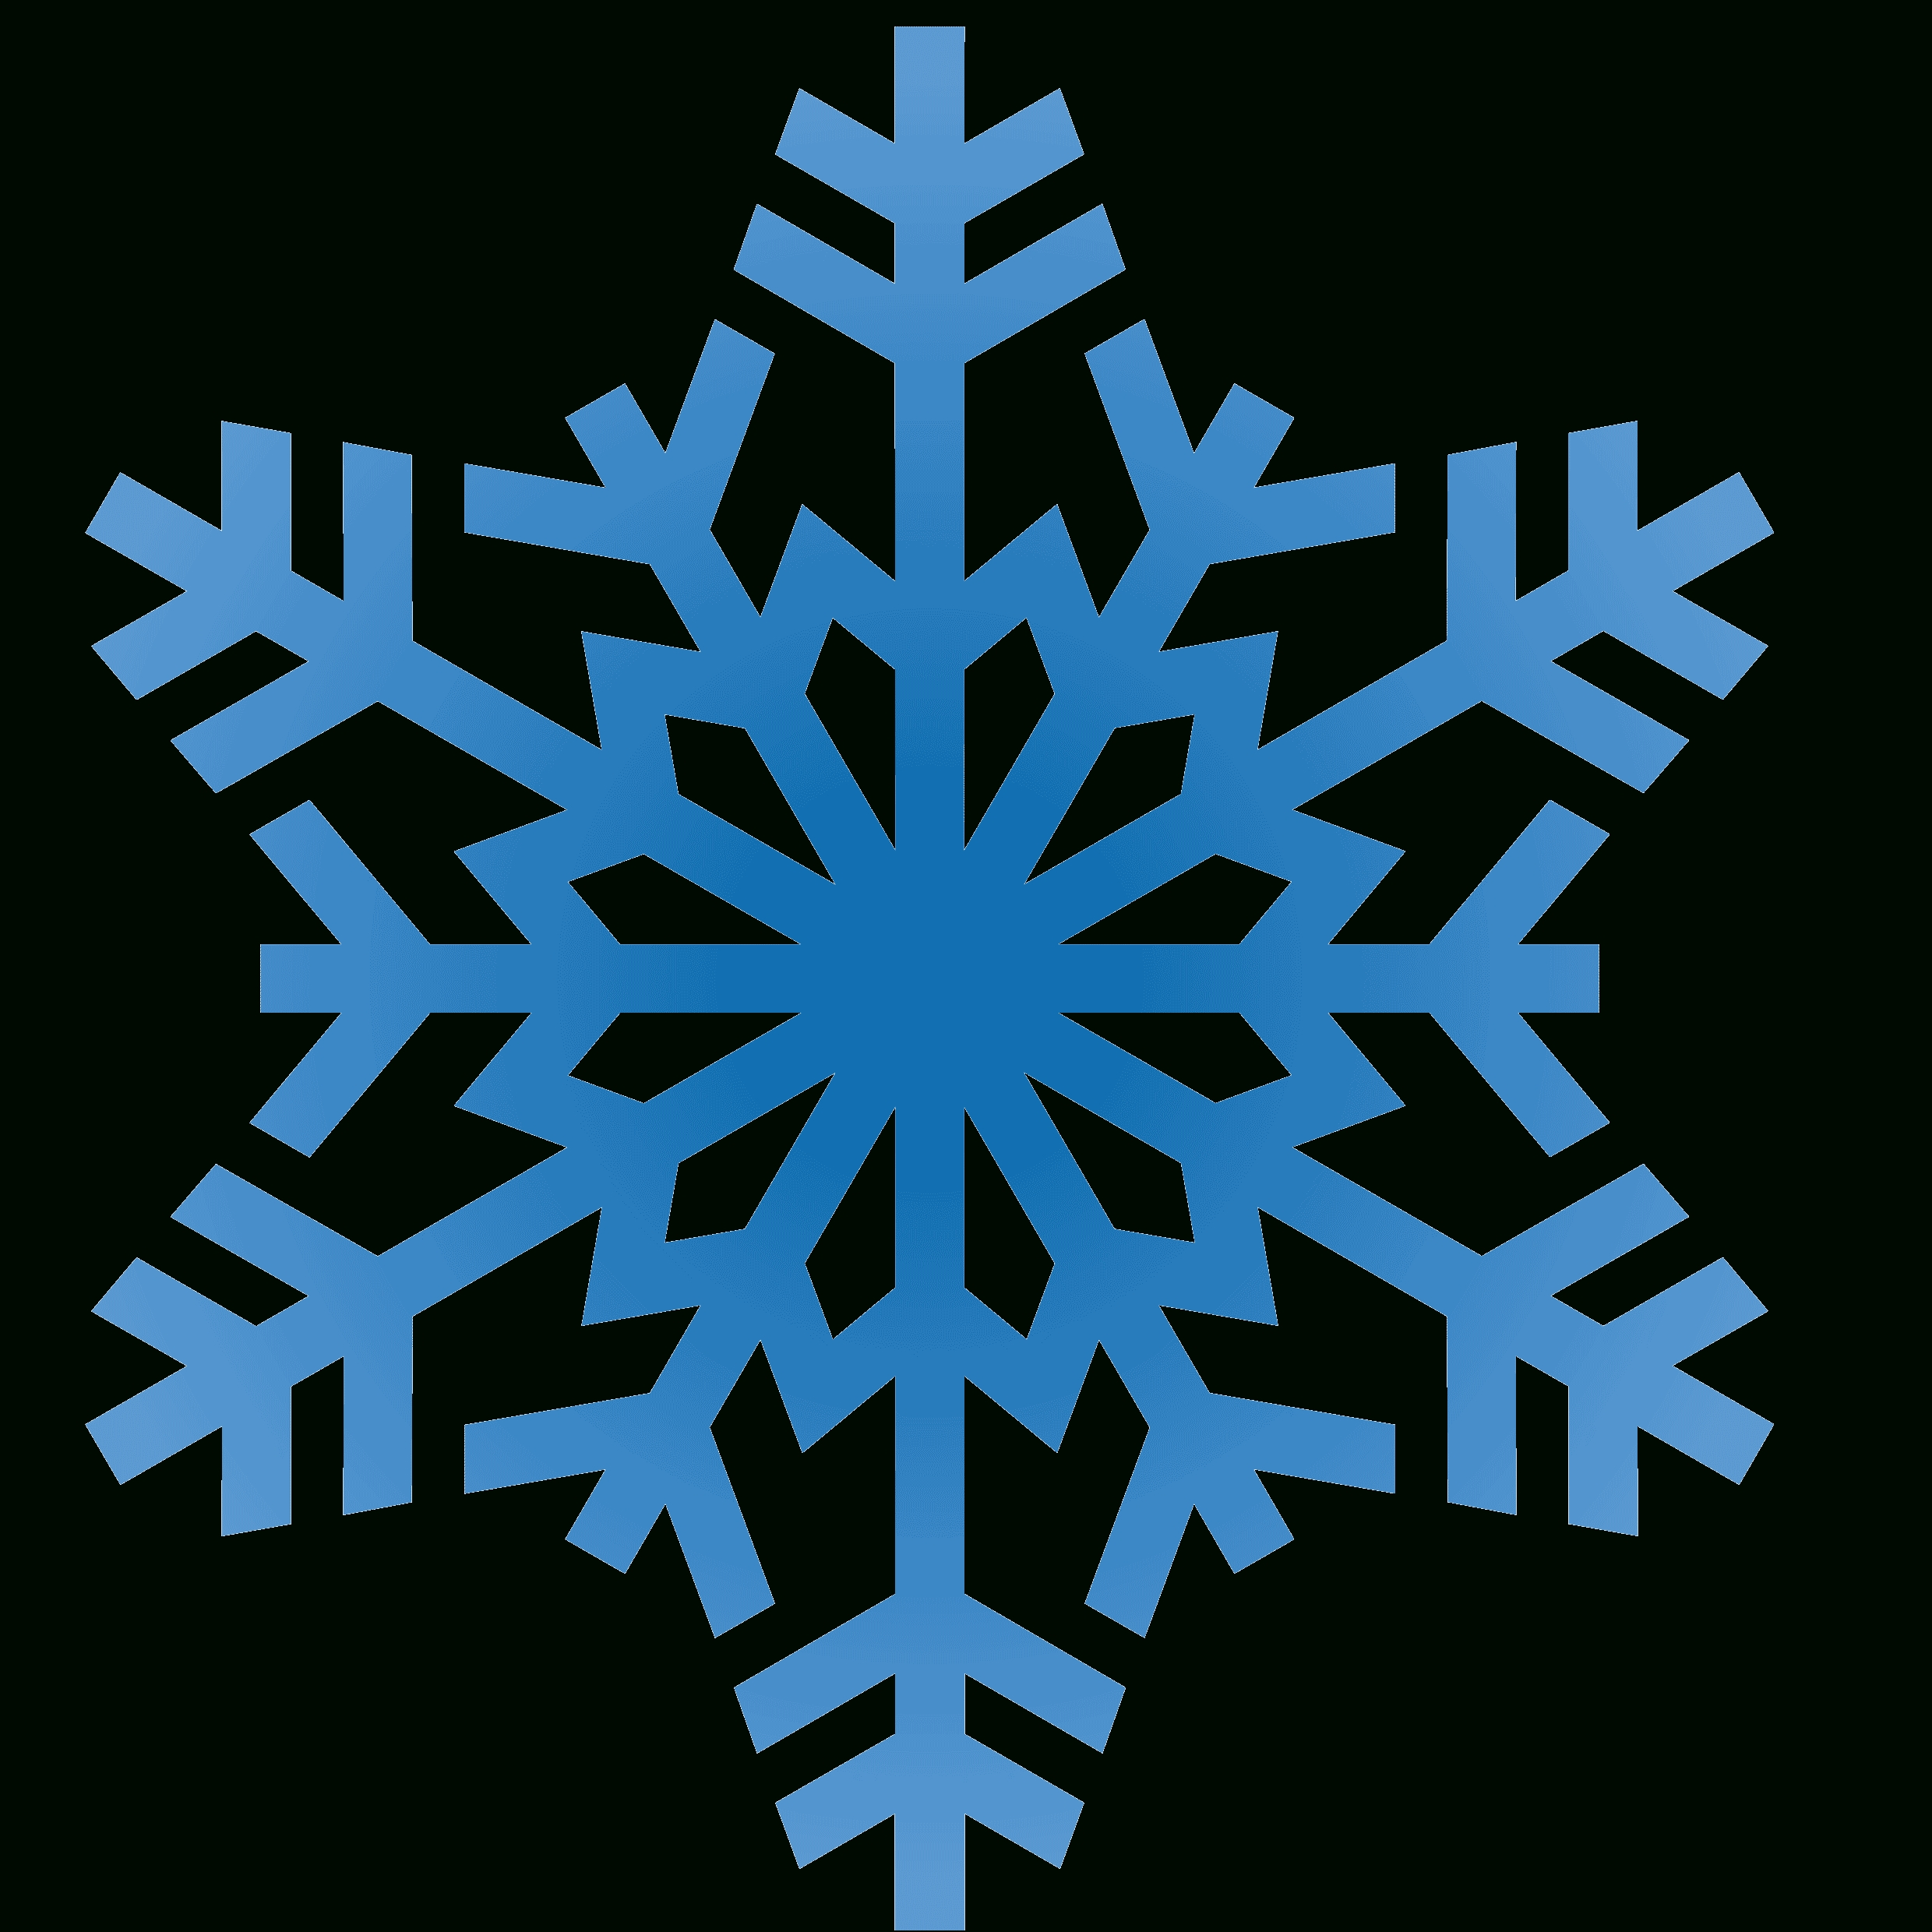 2480x2480 Christmas Snowflake Clipart Free Download Clip Art Free Clip